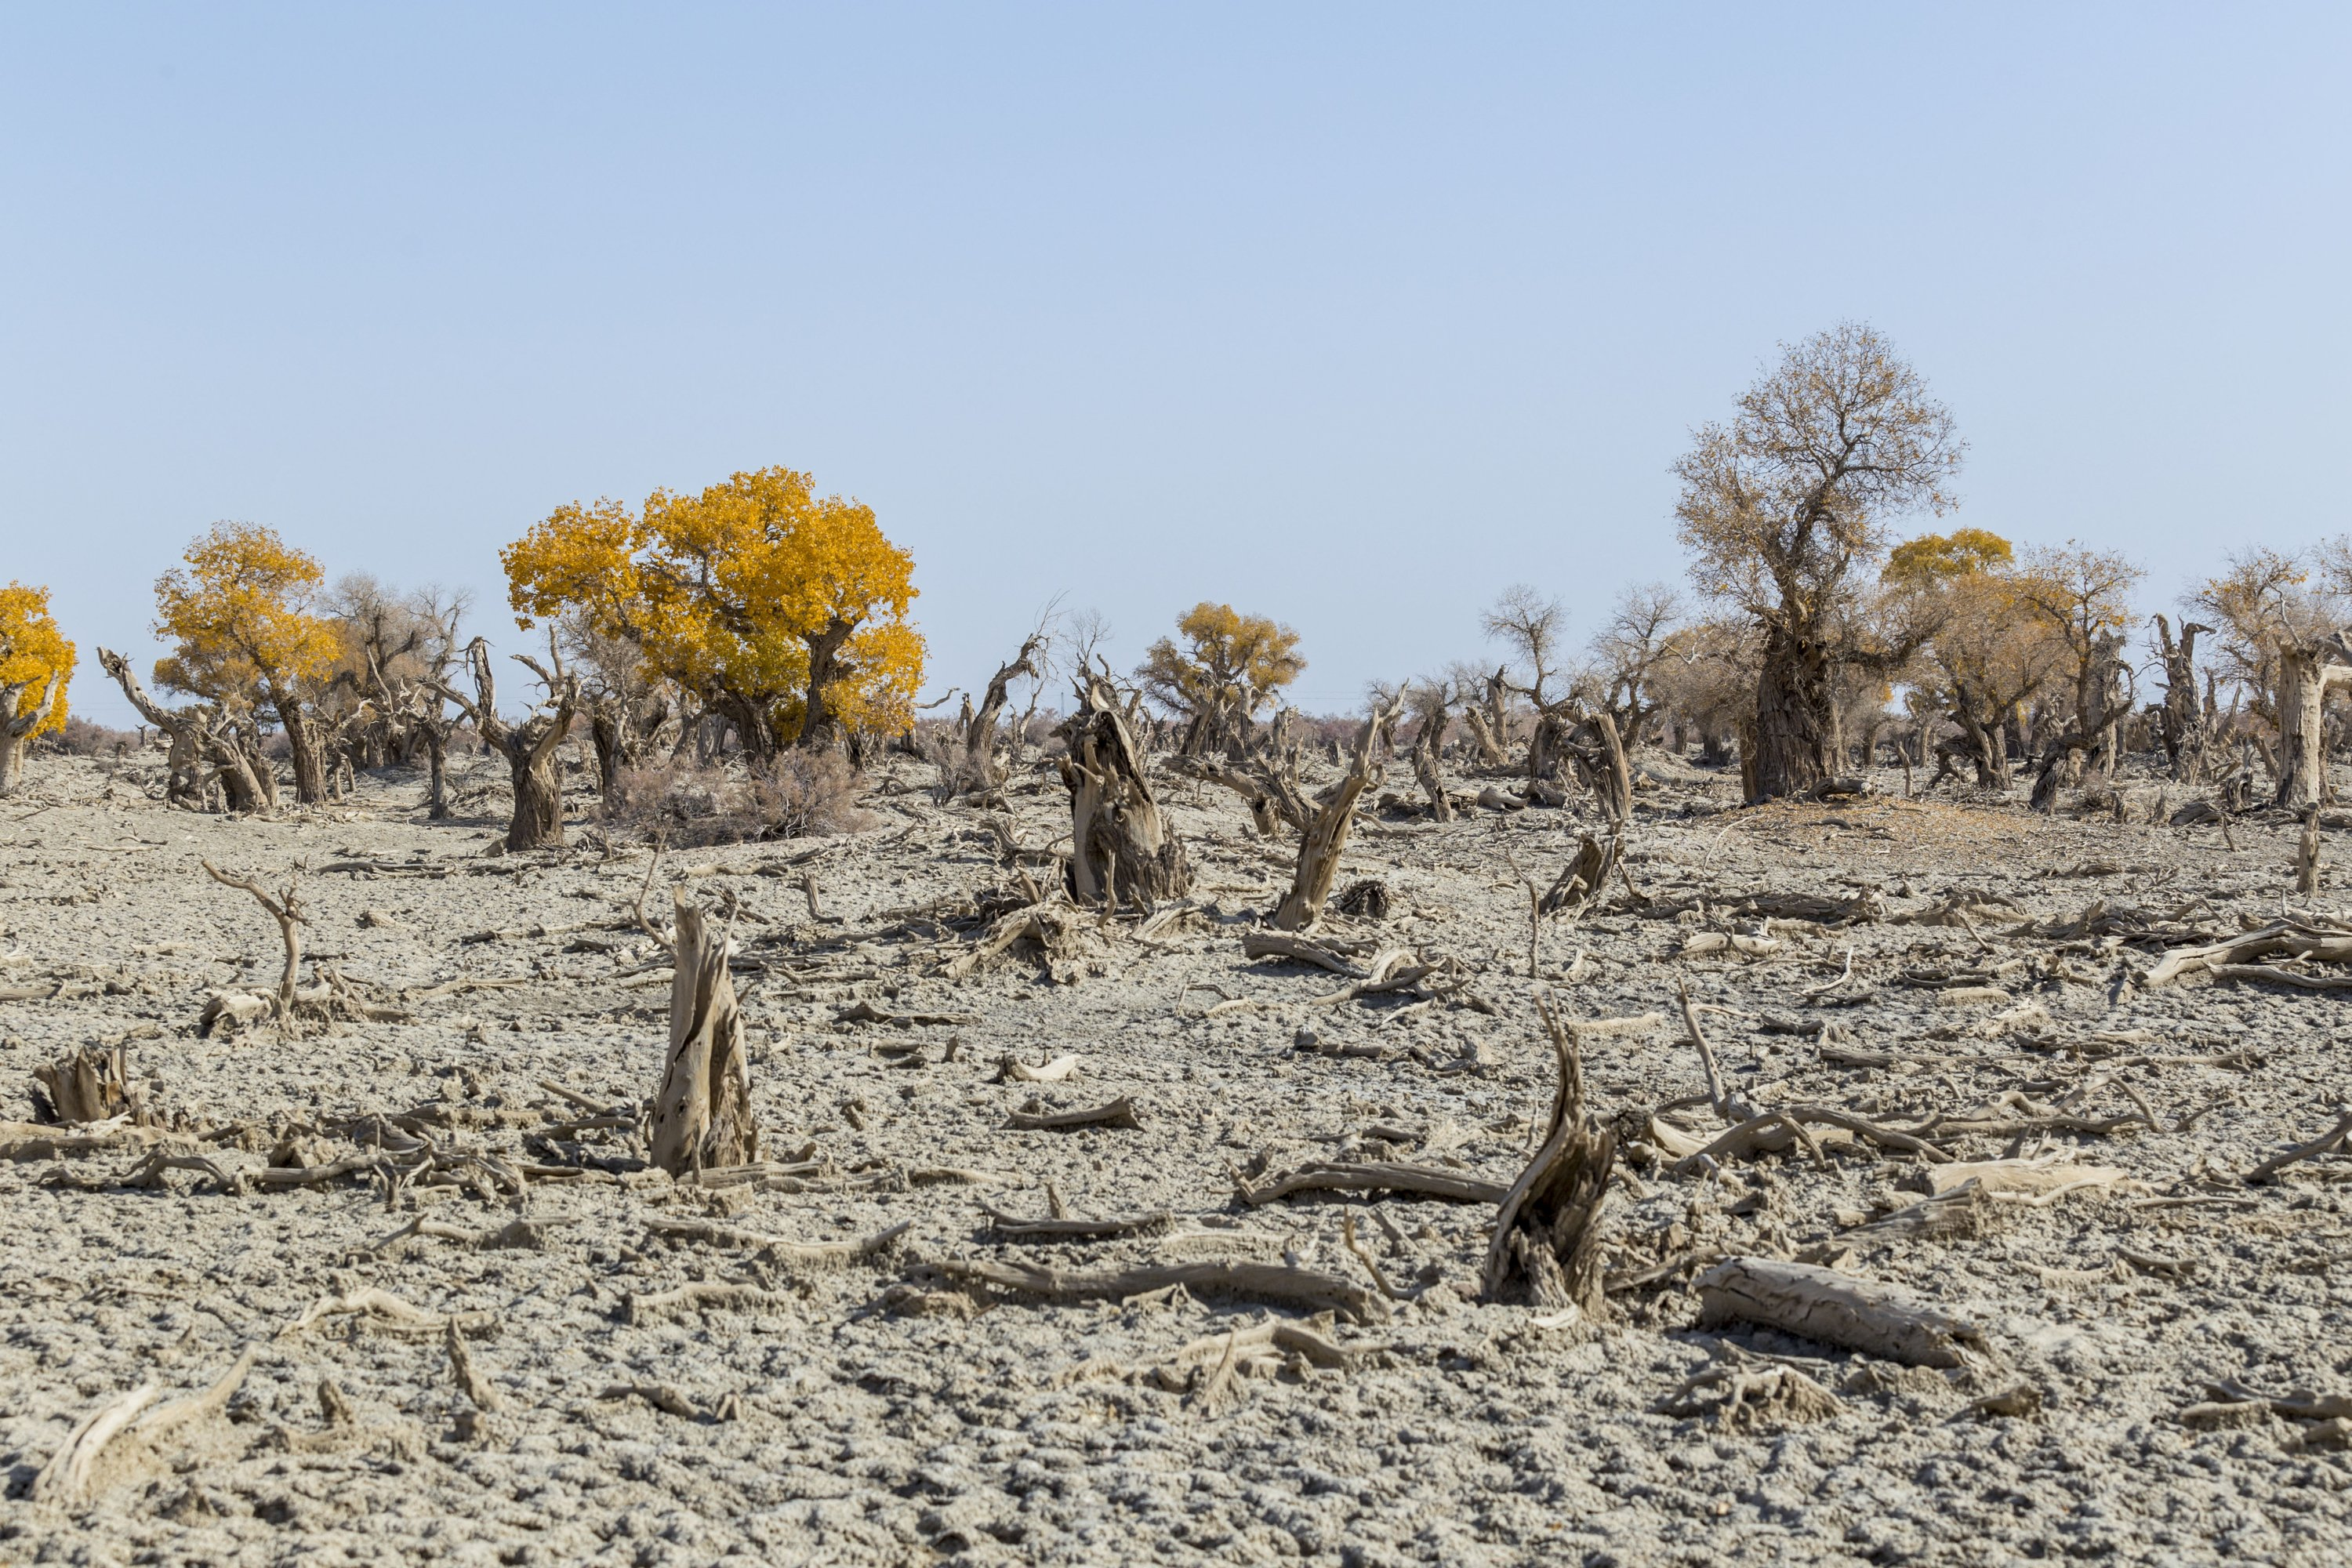 Drought, drought, drought: What mobilizes awareness?